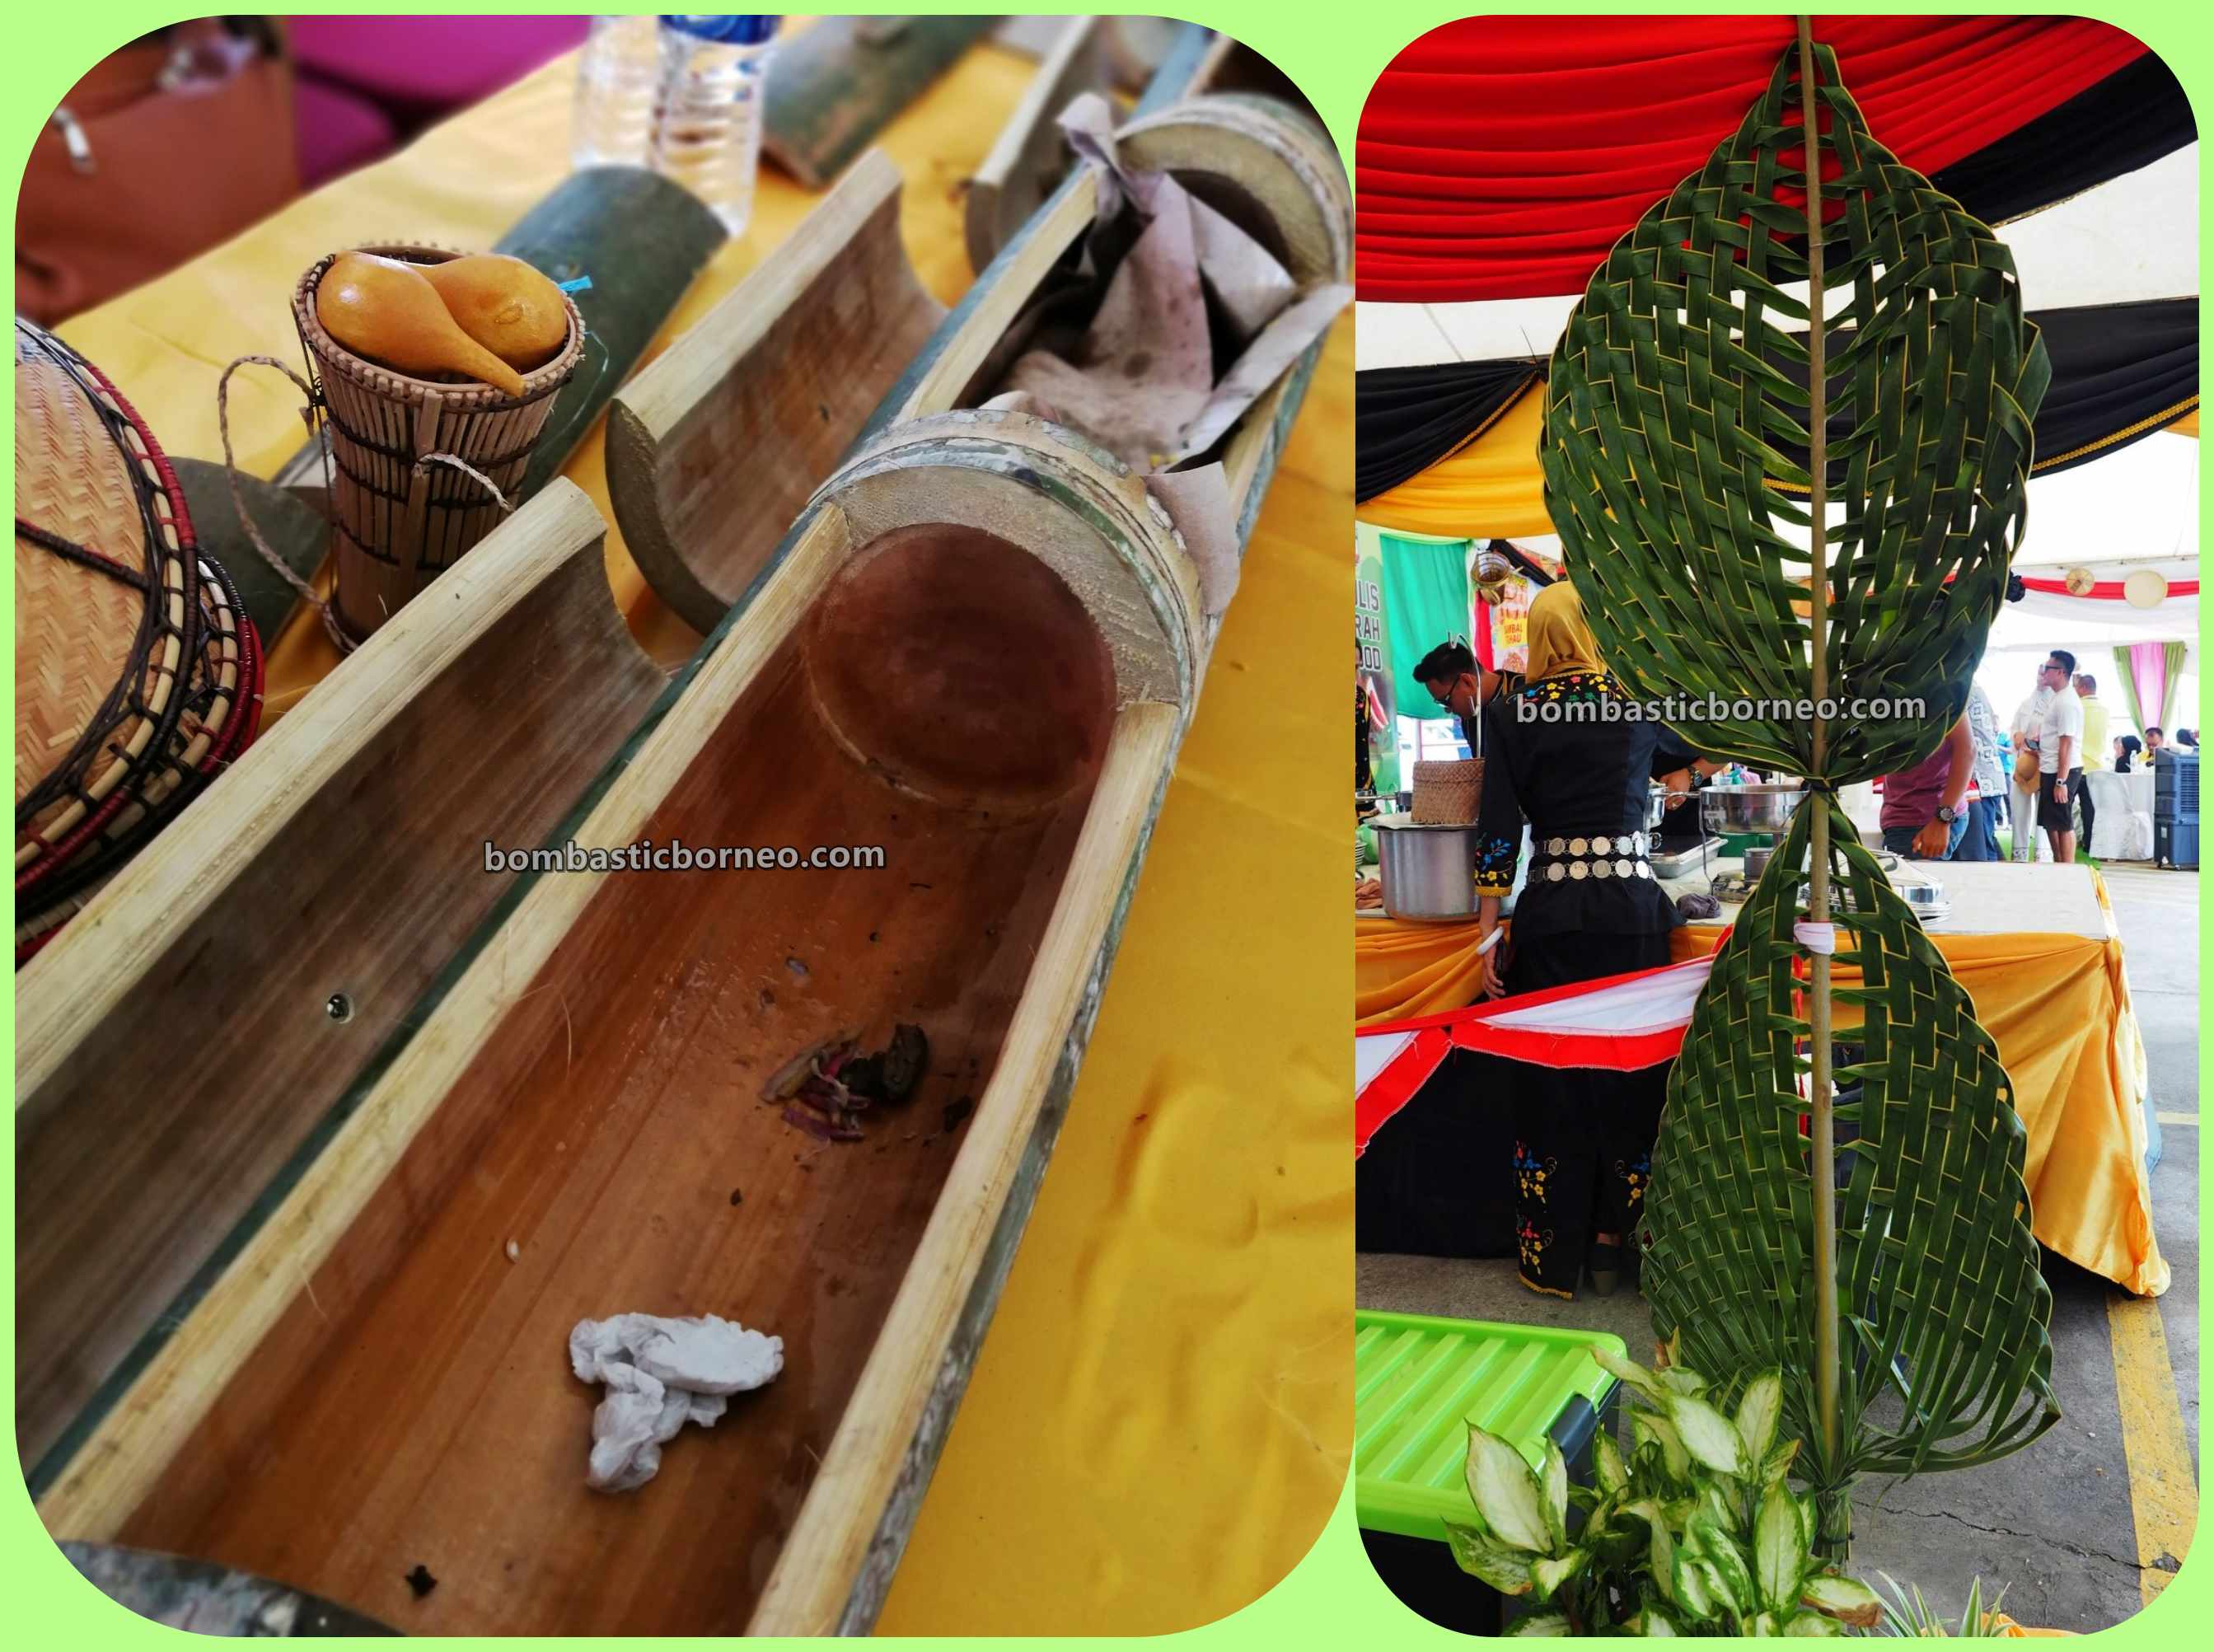 Water Festival, backpackers, destination, budaya, culture, traditional, Tawau, Semporna, tourist attraction, travel guide, Borneo, 马来西亚旅游景点, 沙巴仙本那彩船节